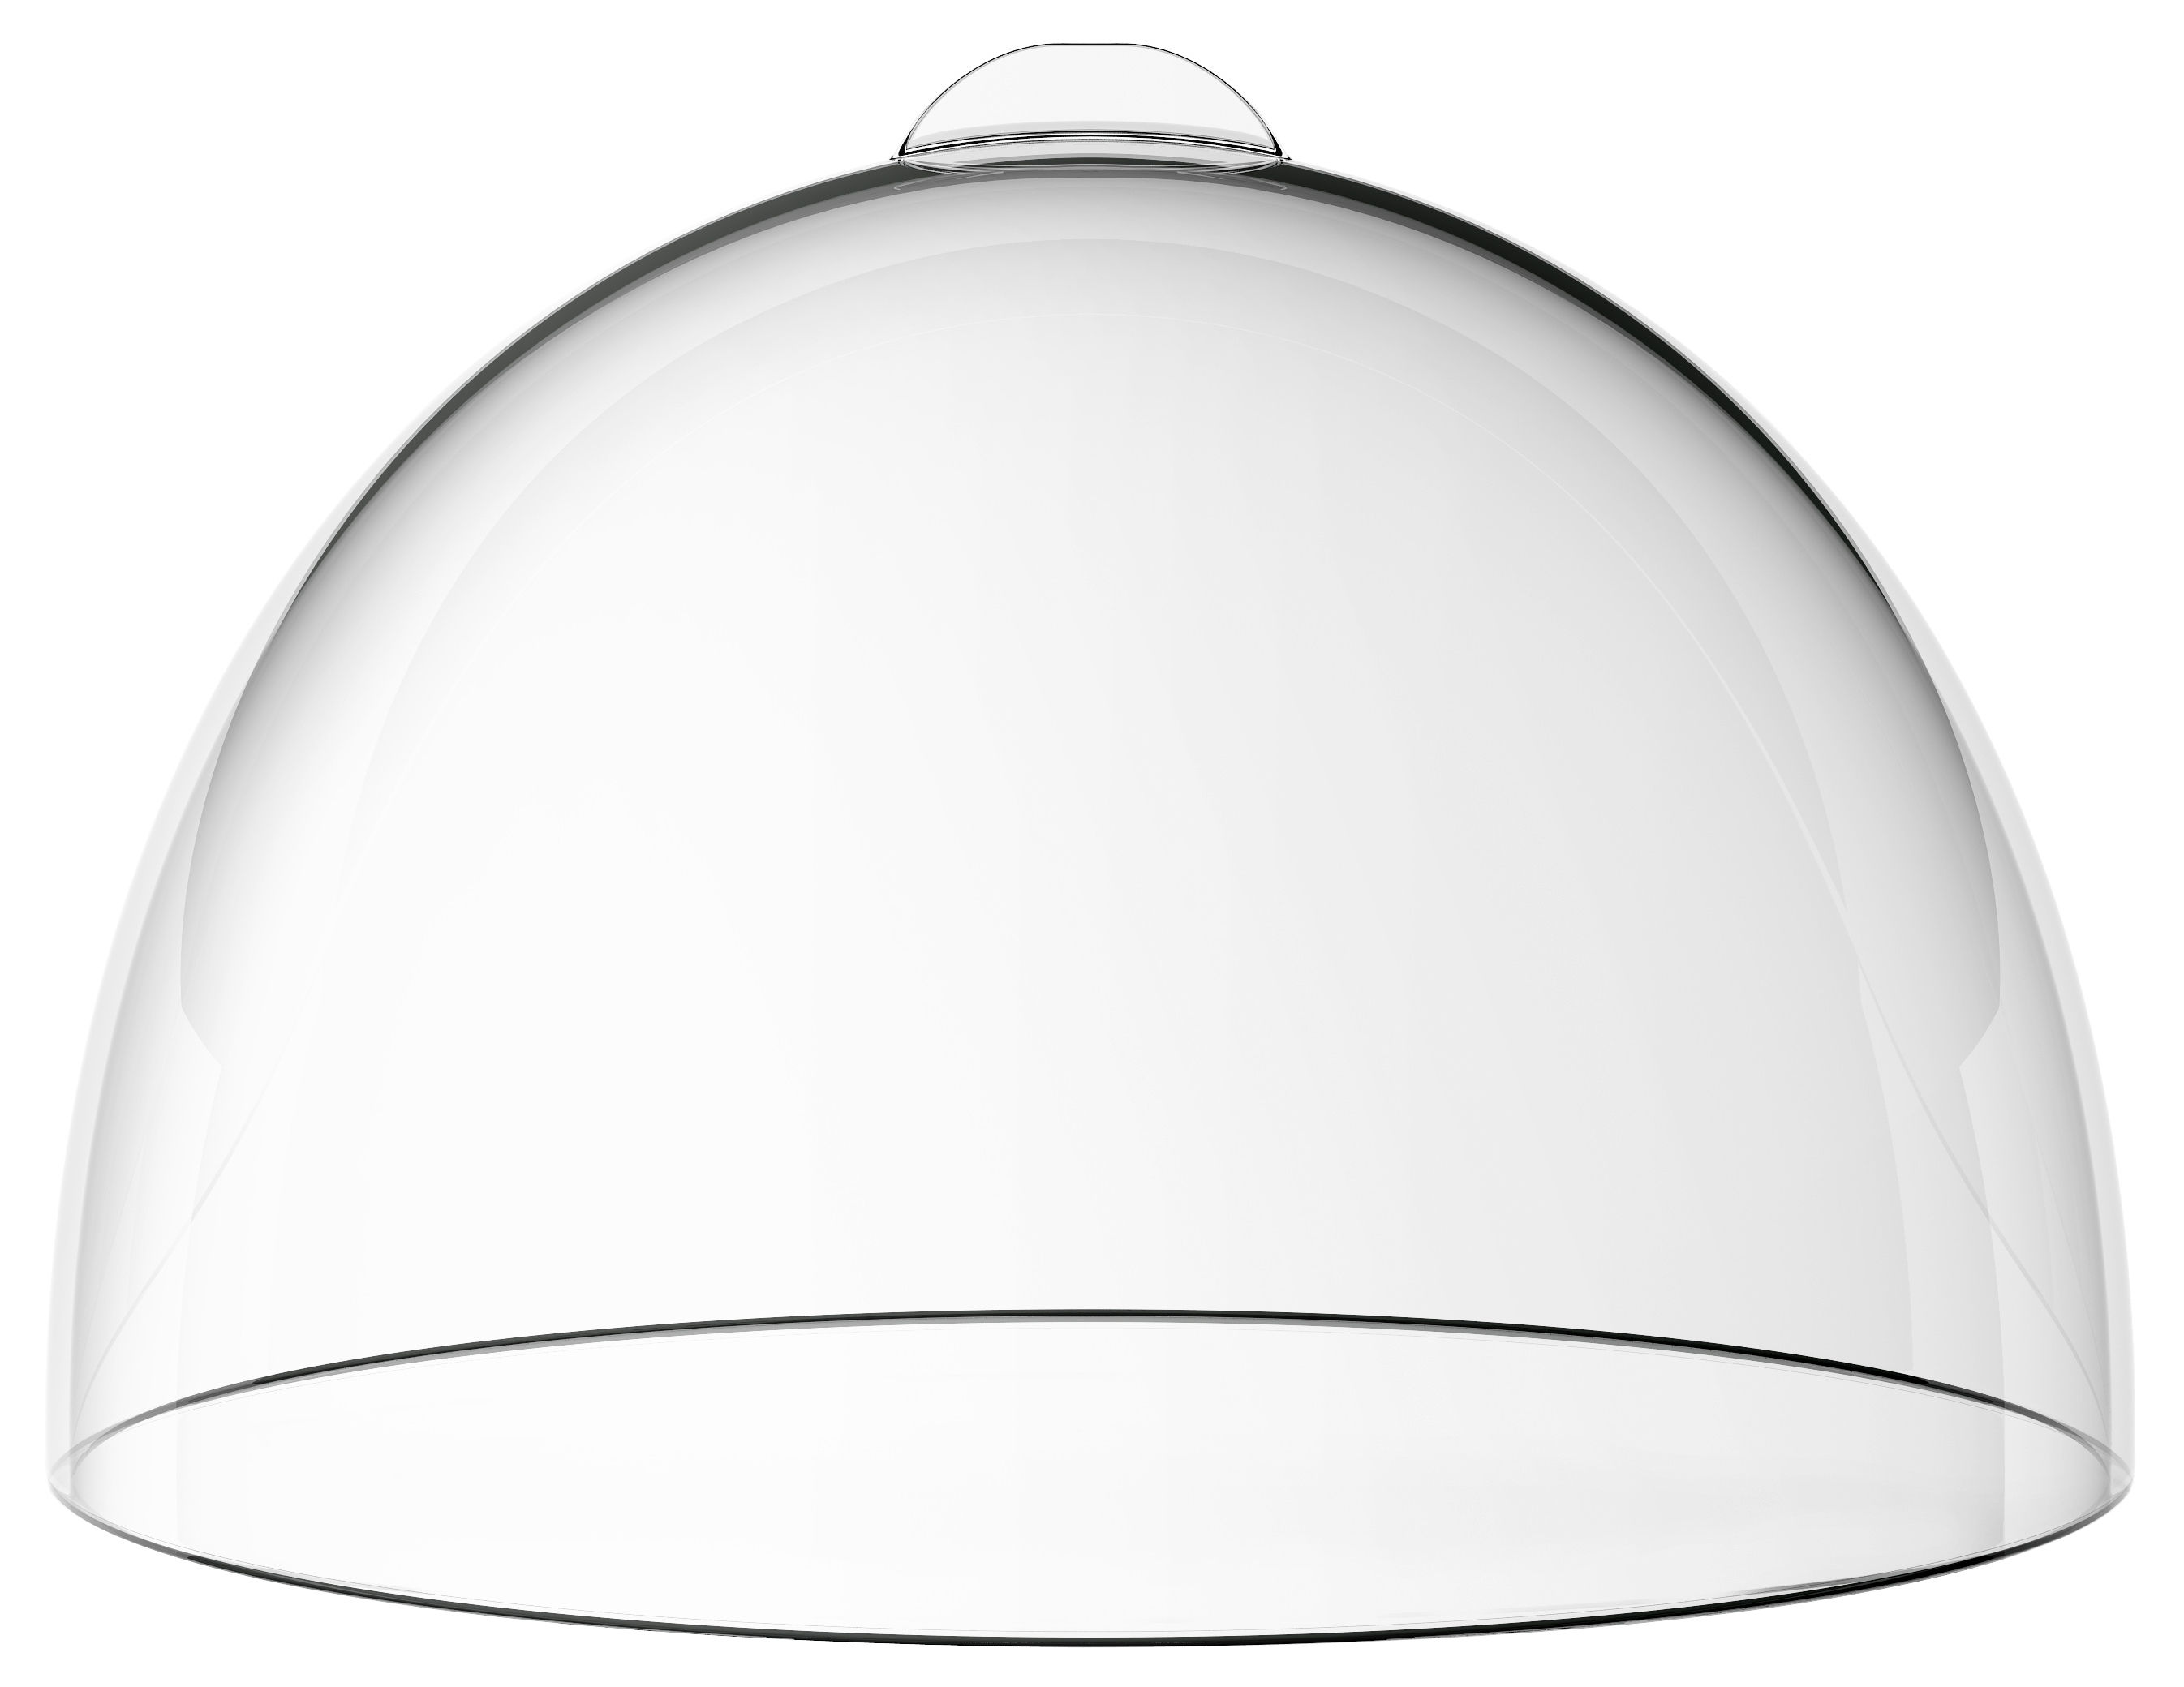 Tableware - Serving Plates - Bell - / For Bolle Cake stand by Italesse - Transparent - SAN plastic